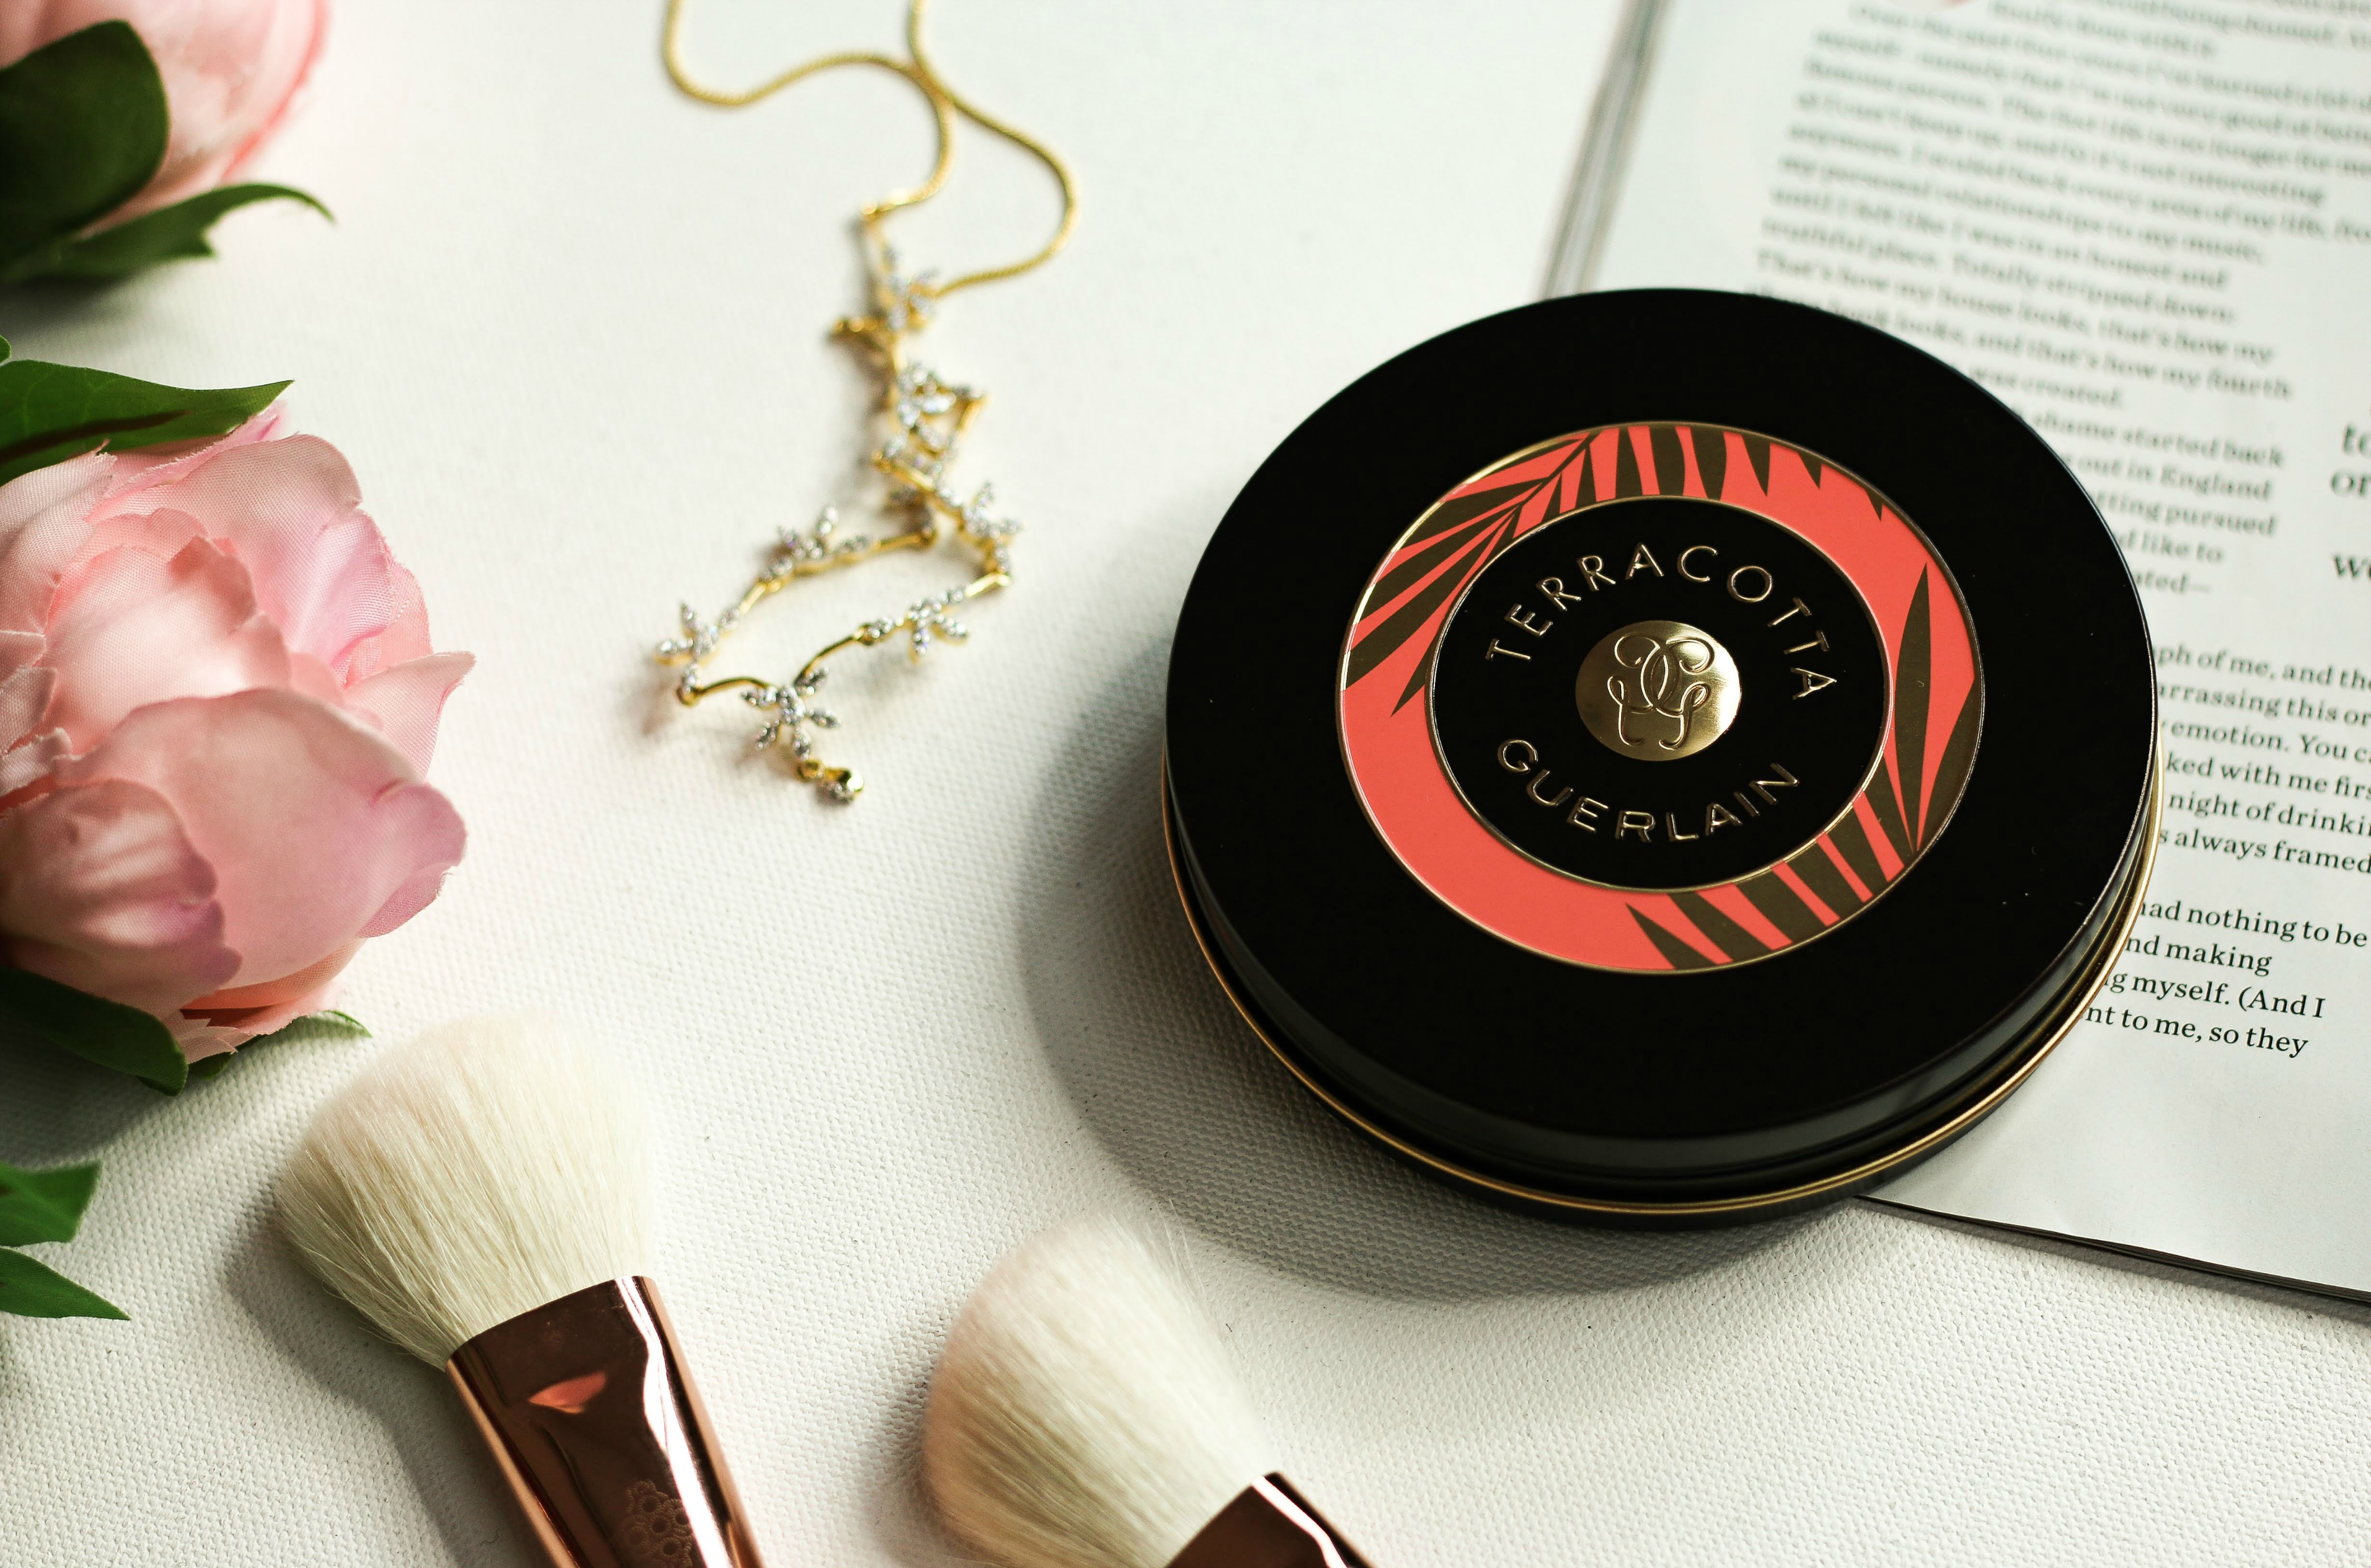 Guerlain Terracotta Sous Les Palmiers Bronzing and Blush Powder | Review & Swatches